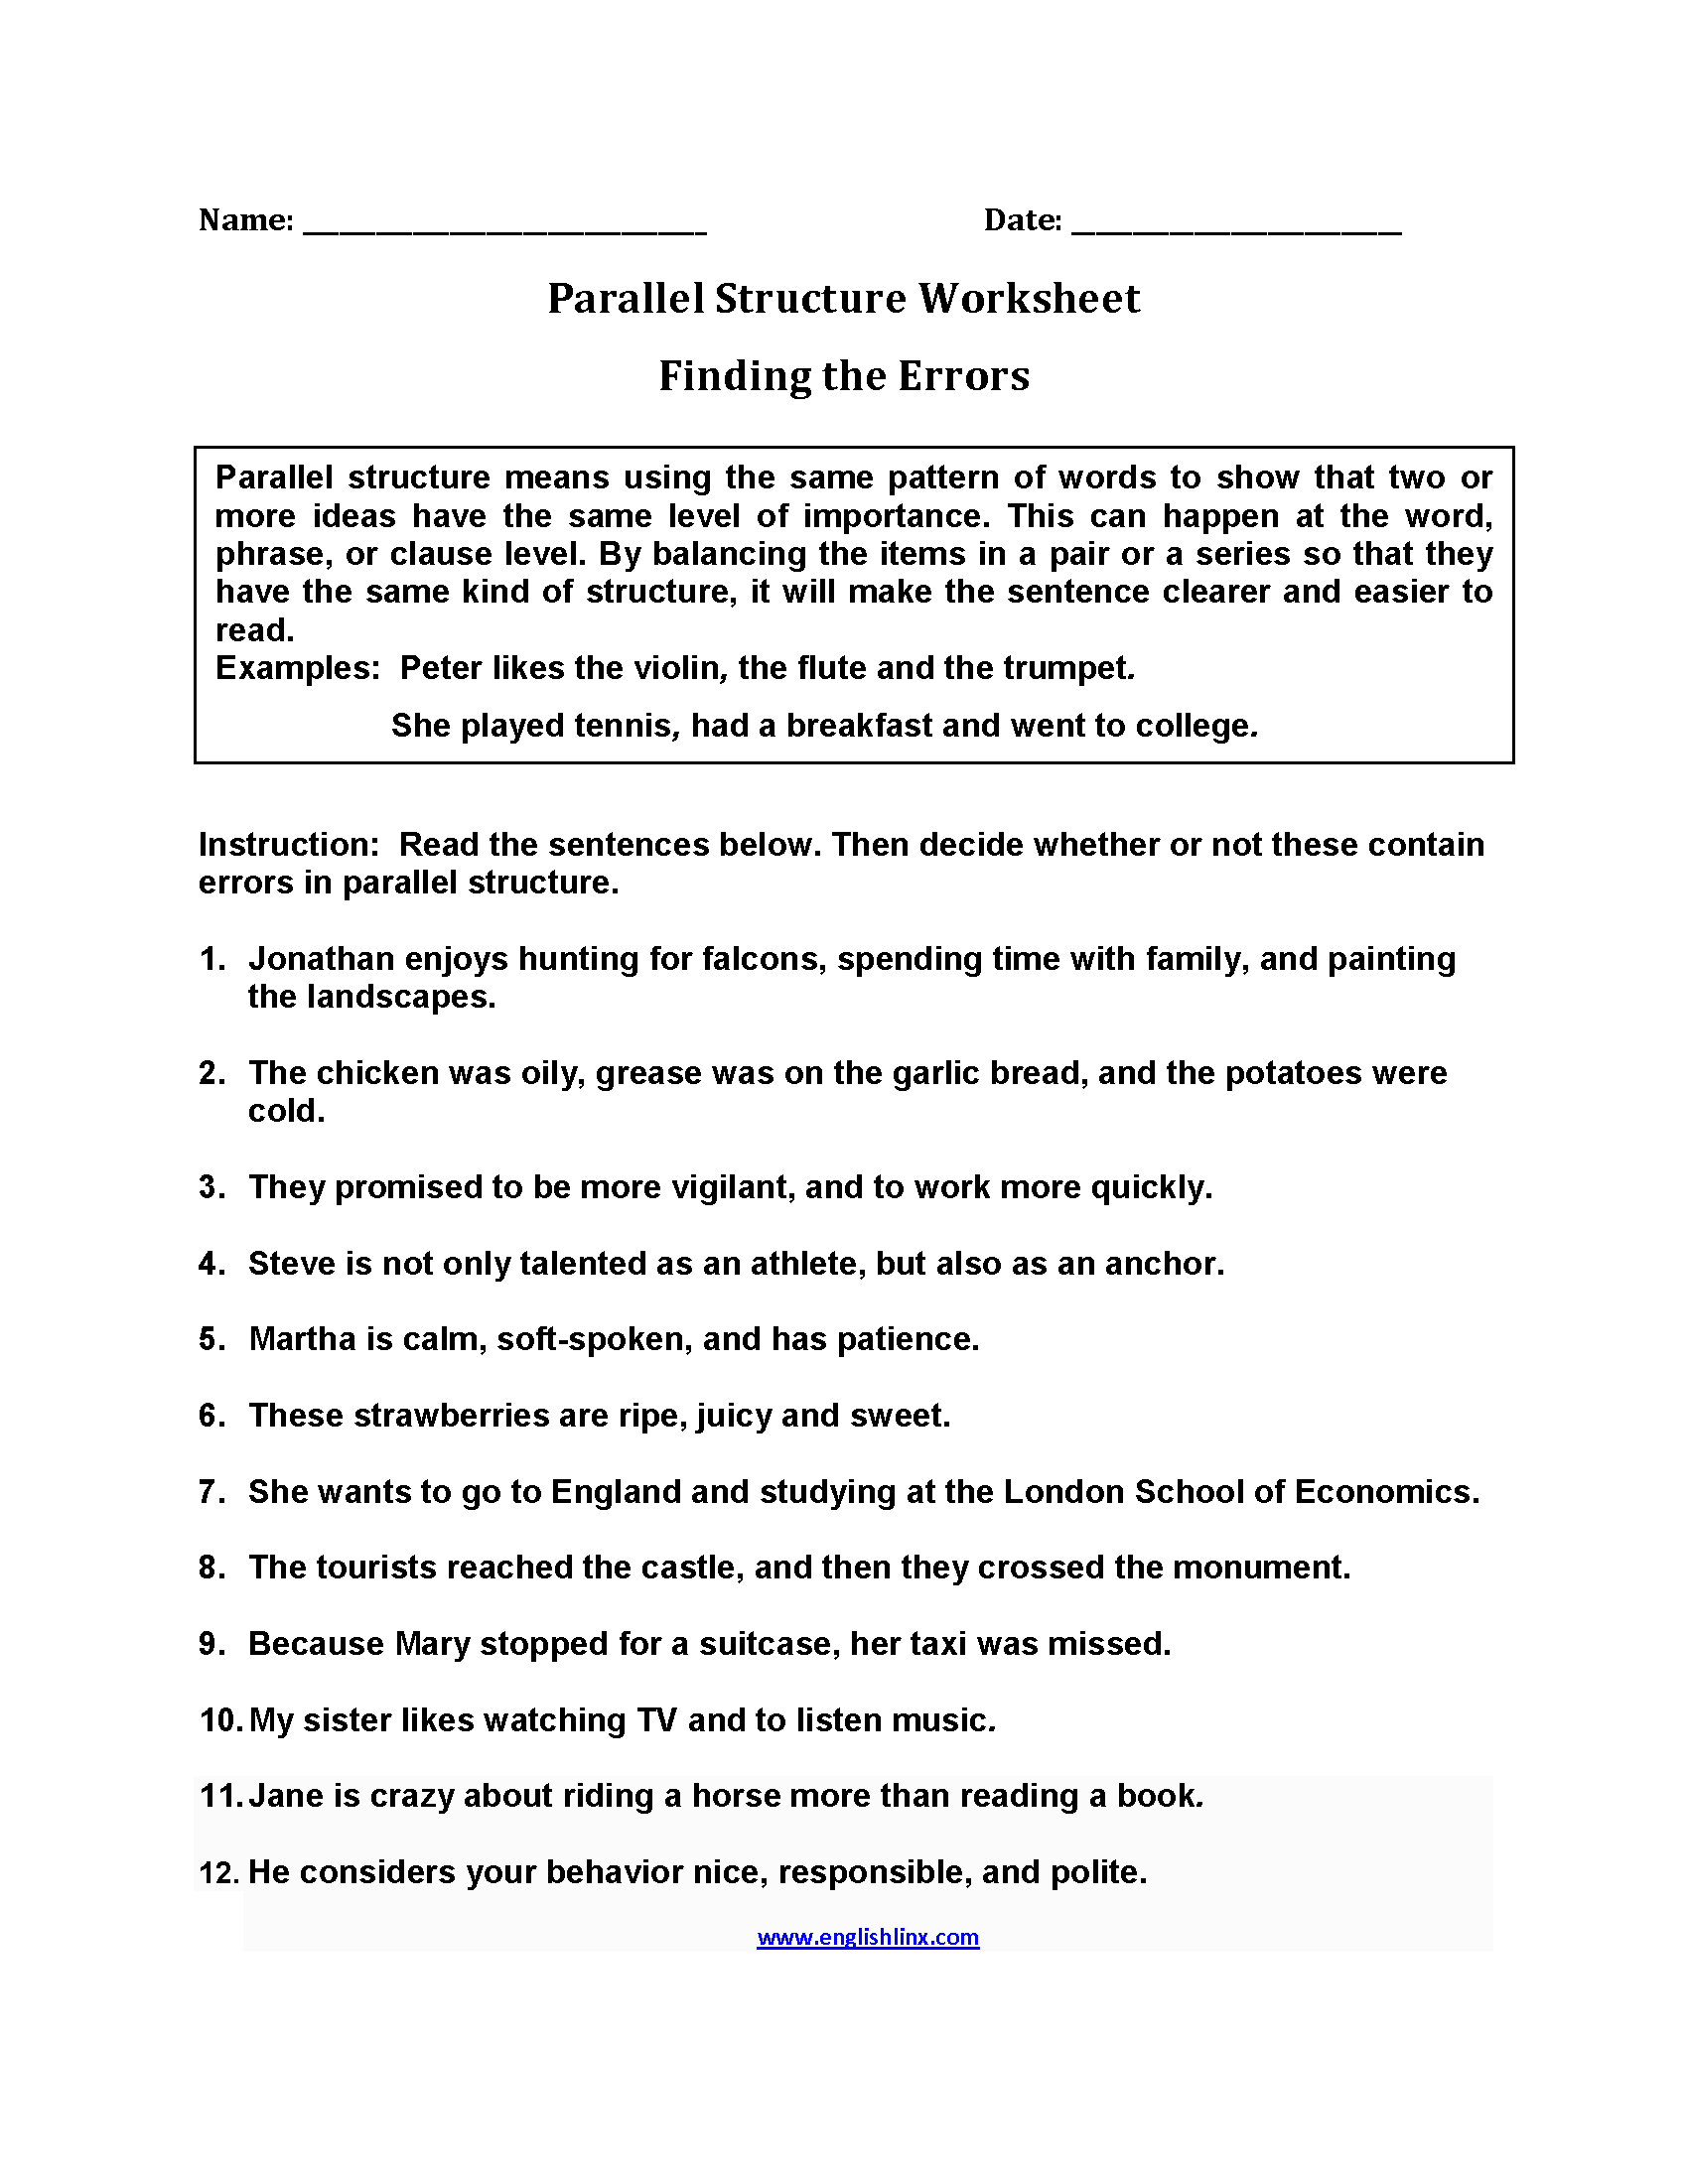 Finding Errors Parallel Structure Worksheets